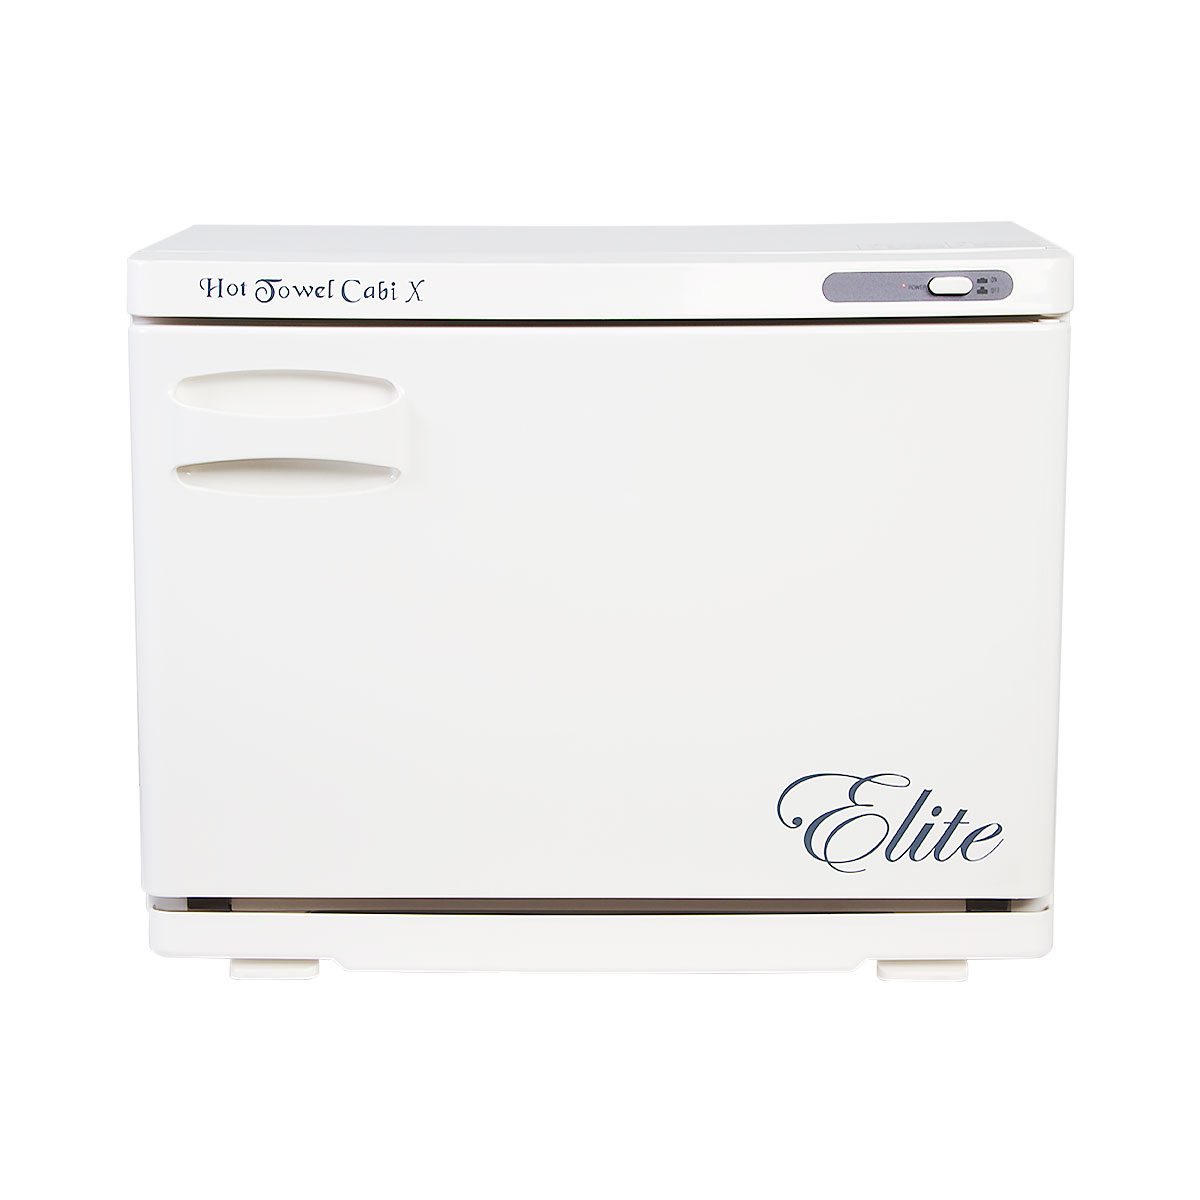 White Elite Hot Towel Warmer Cabby with Pull Down Door alternative product image 1